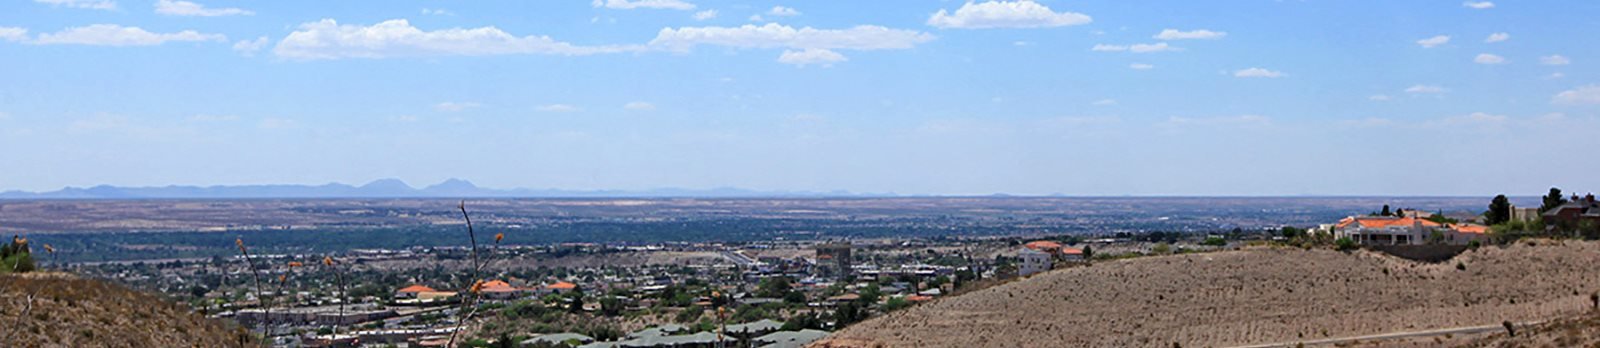 The Pointe El Paso Texas Banner Image